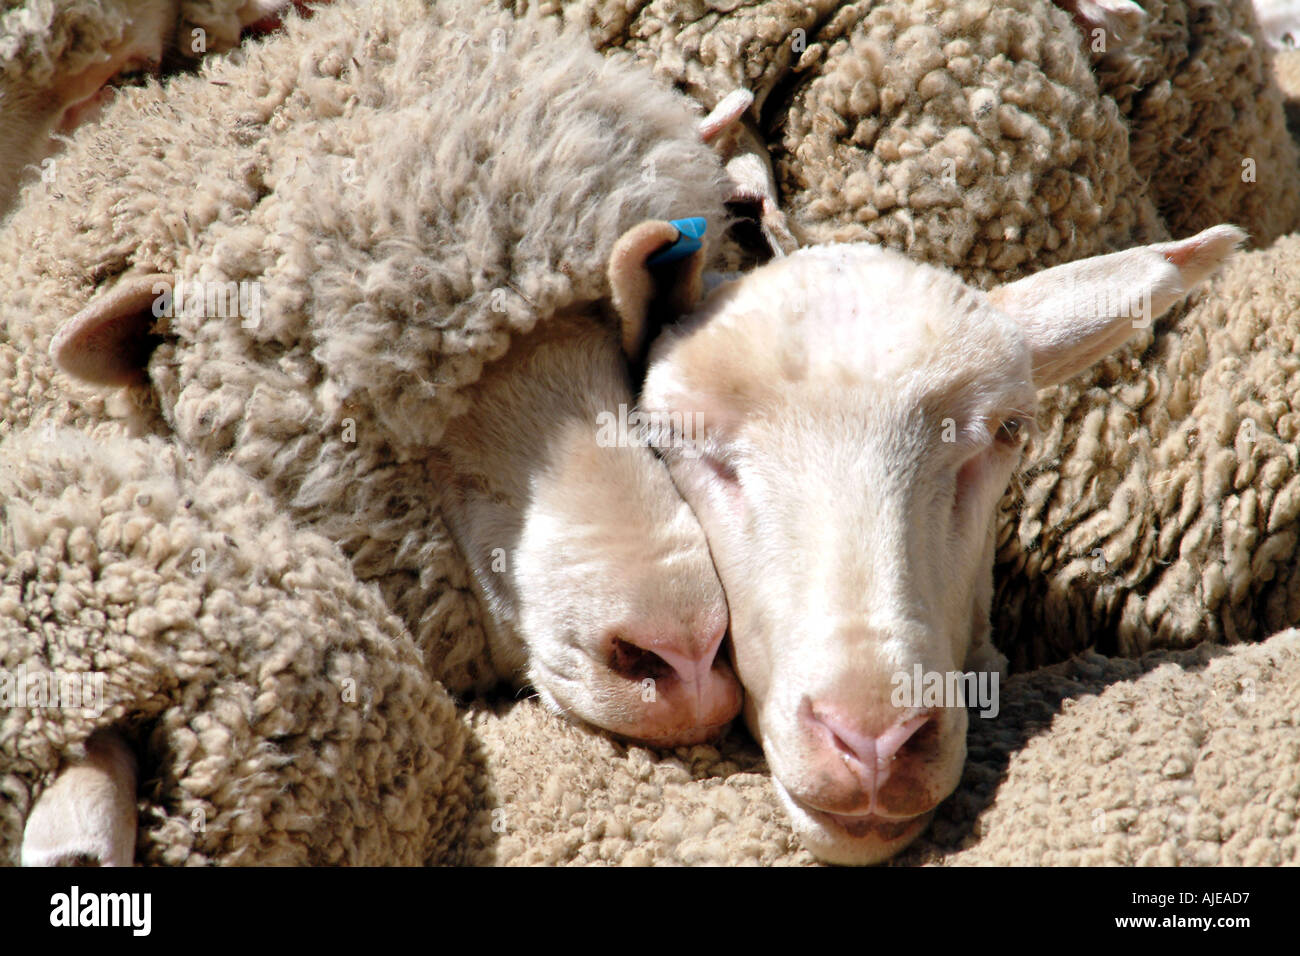 Sheep Shearing Dohne Merino Breed Pictured In Caledon Western Cape Stock Photo Alamy